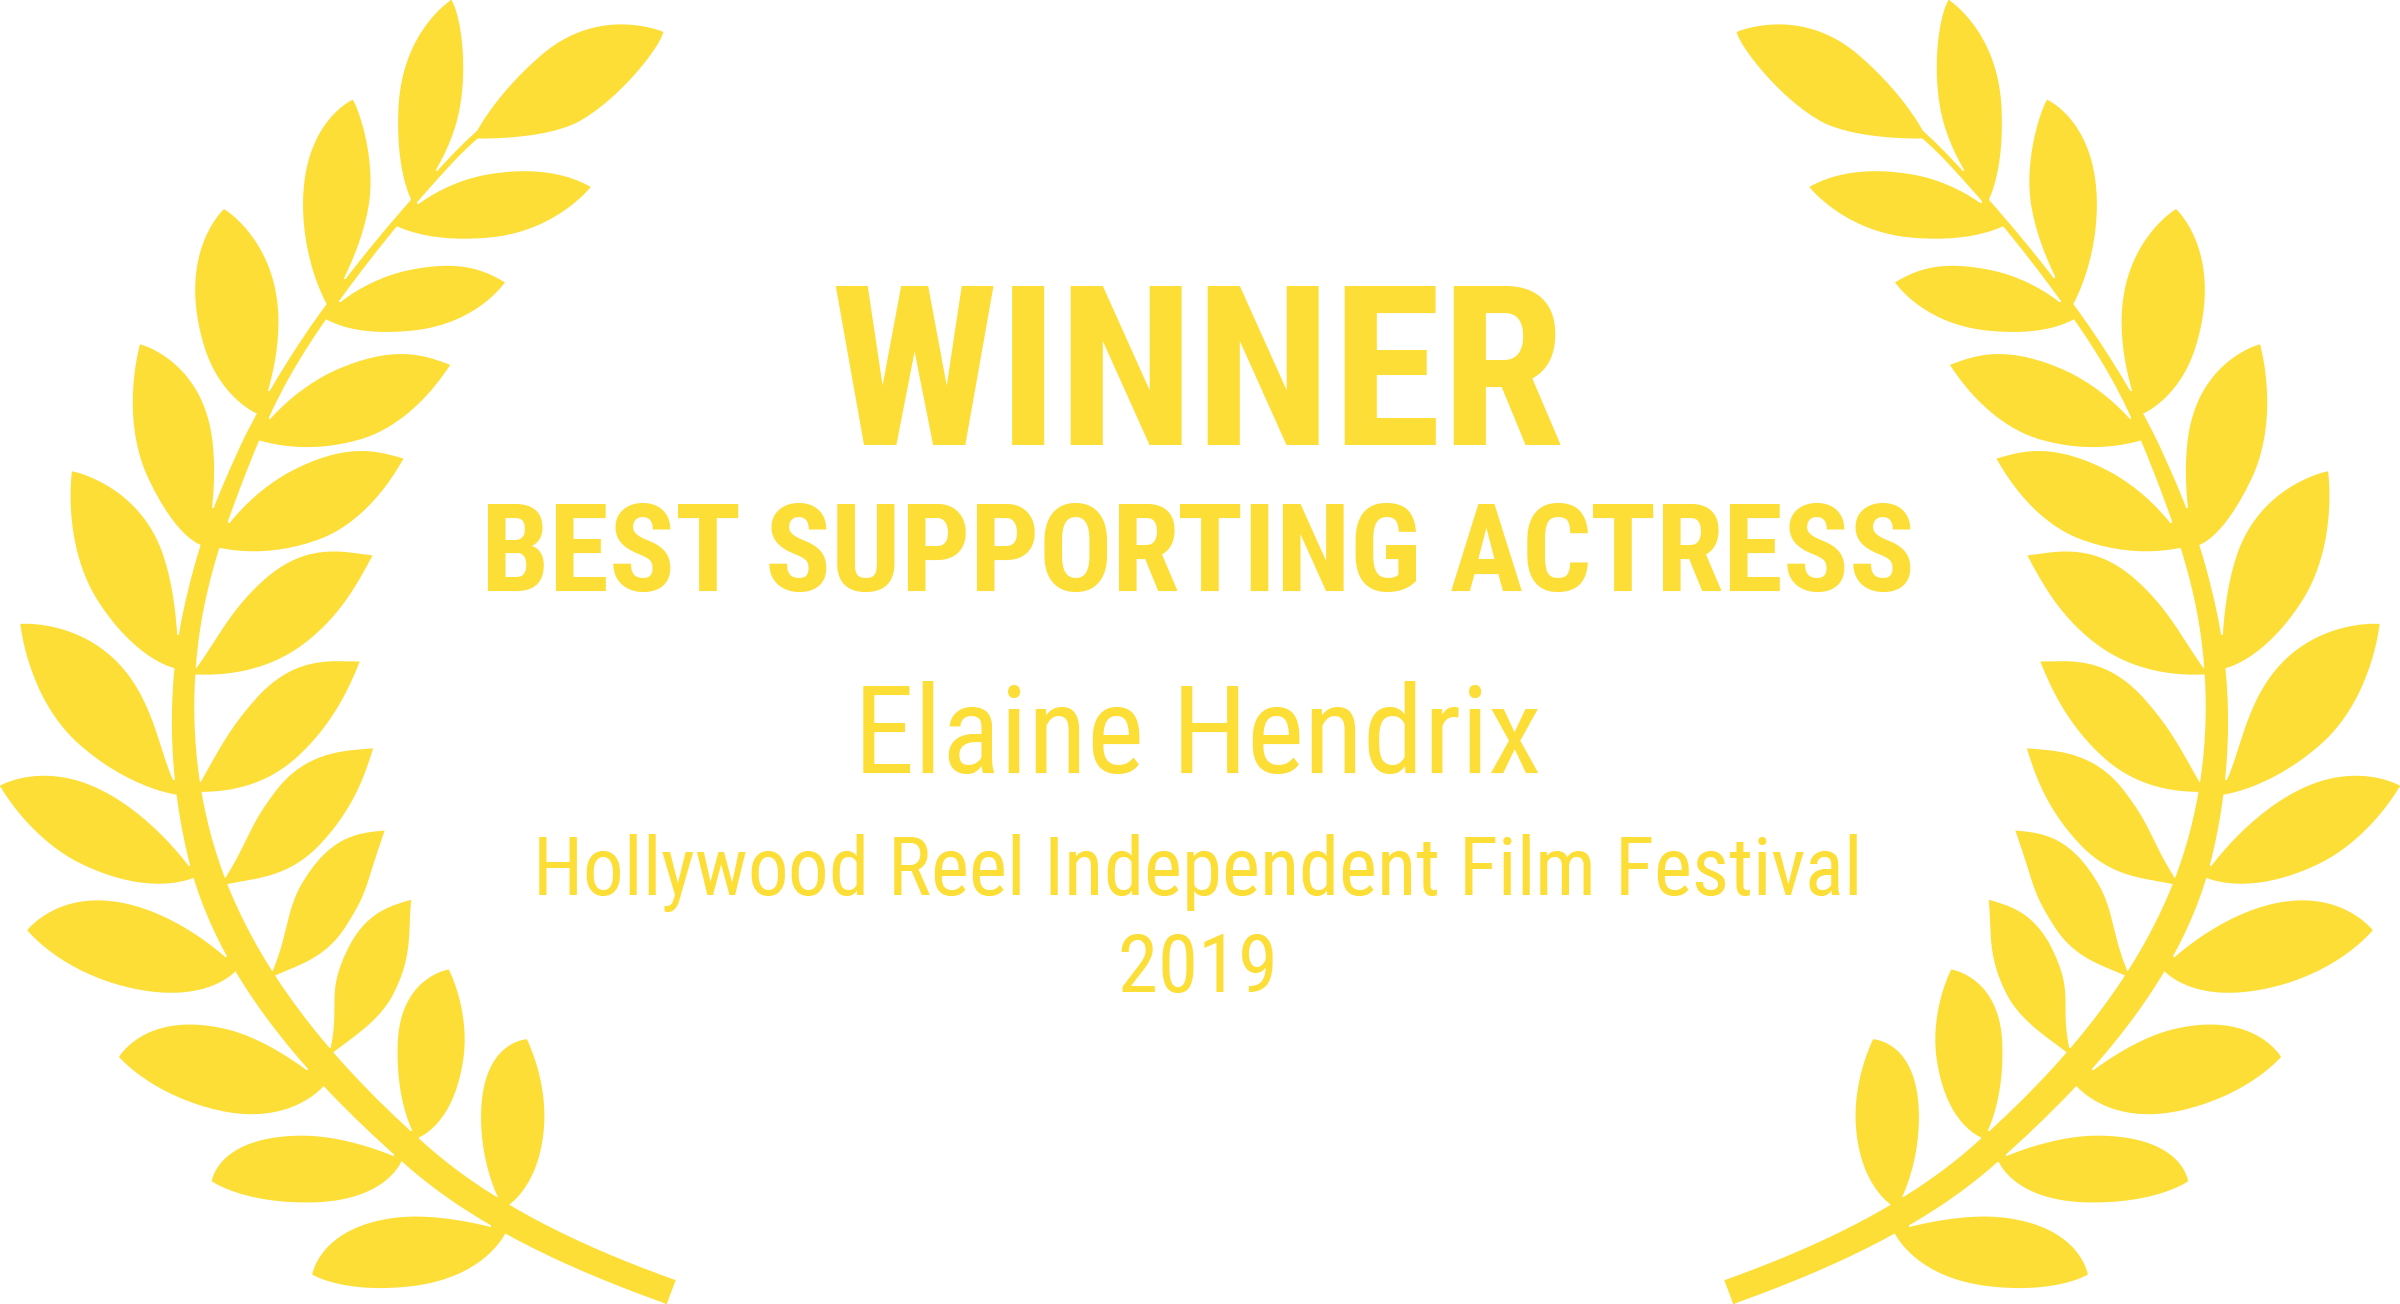 Low Low - Winner Best Support Actress - Hollywood Reel Independent Film Festival 2019